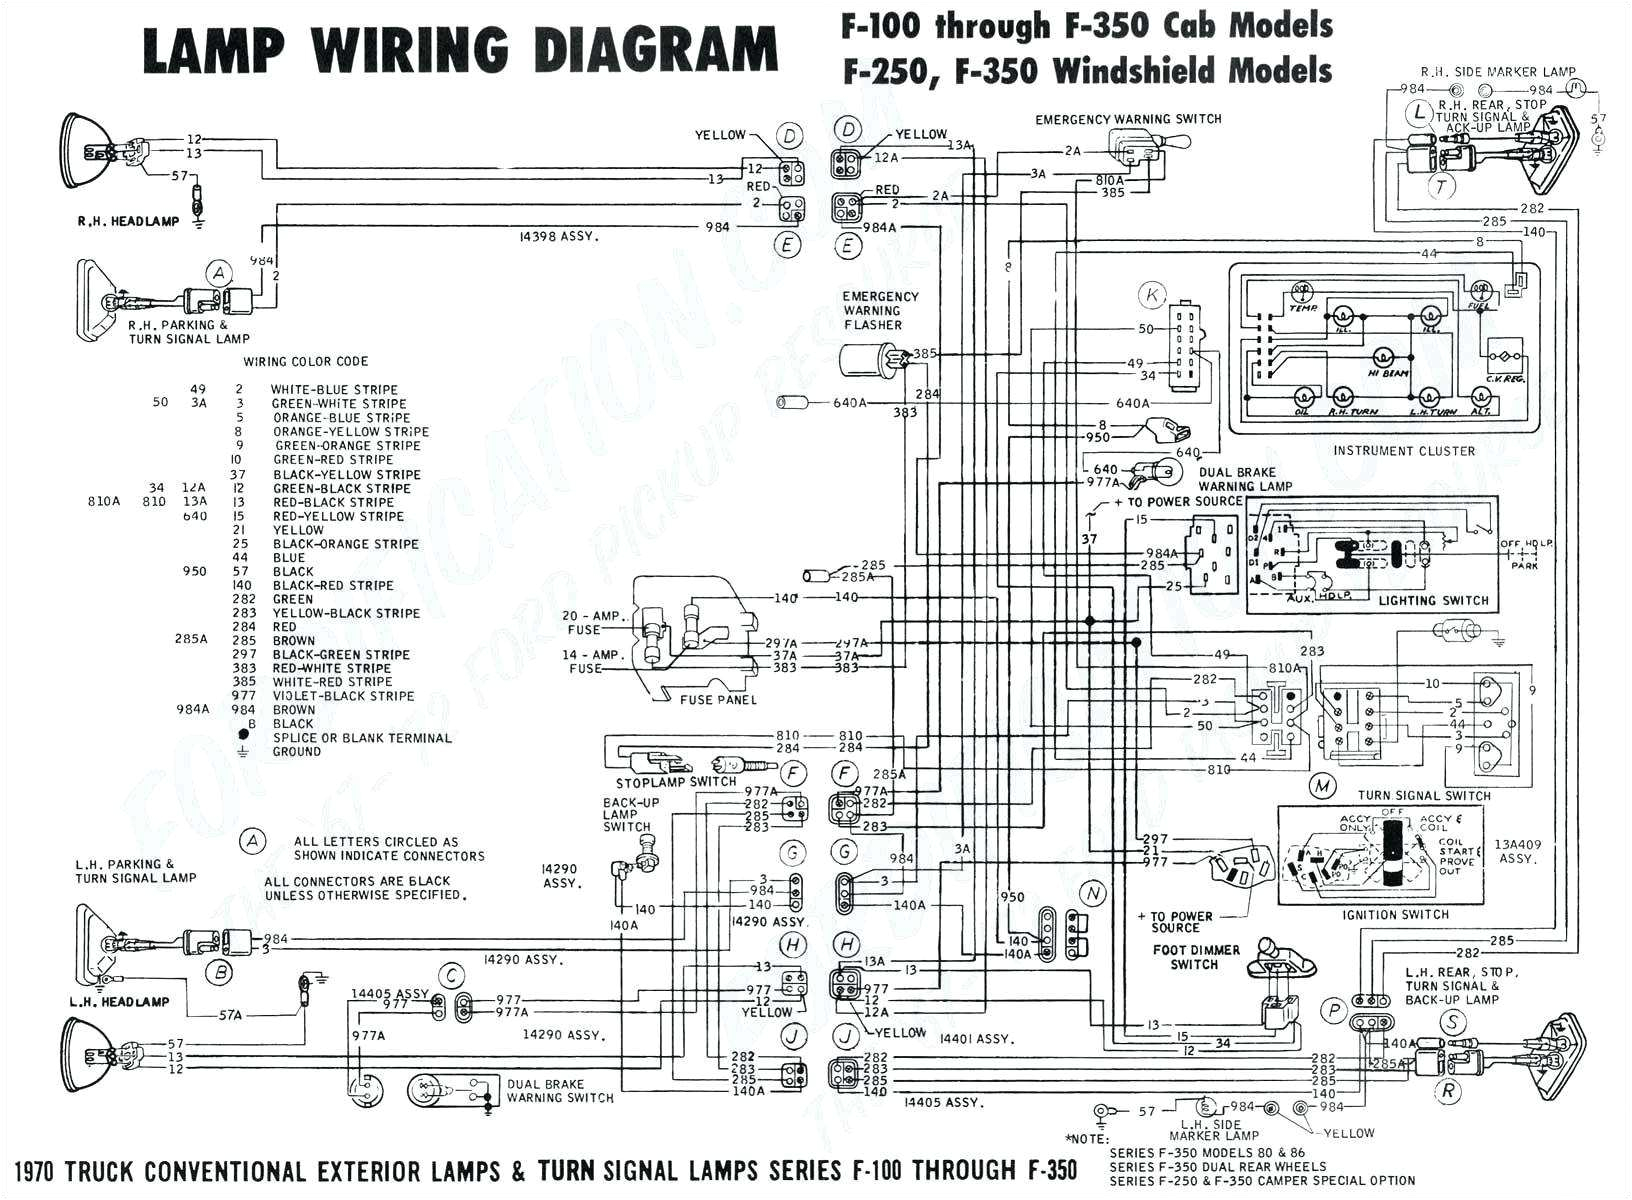 1998 range rover abs pressure control switch wiring diagram wiring 2001 range rover 4 6 fuse